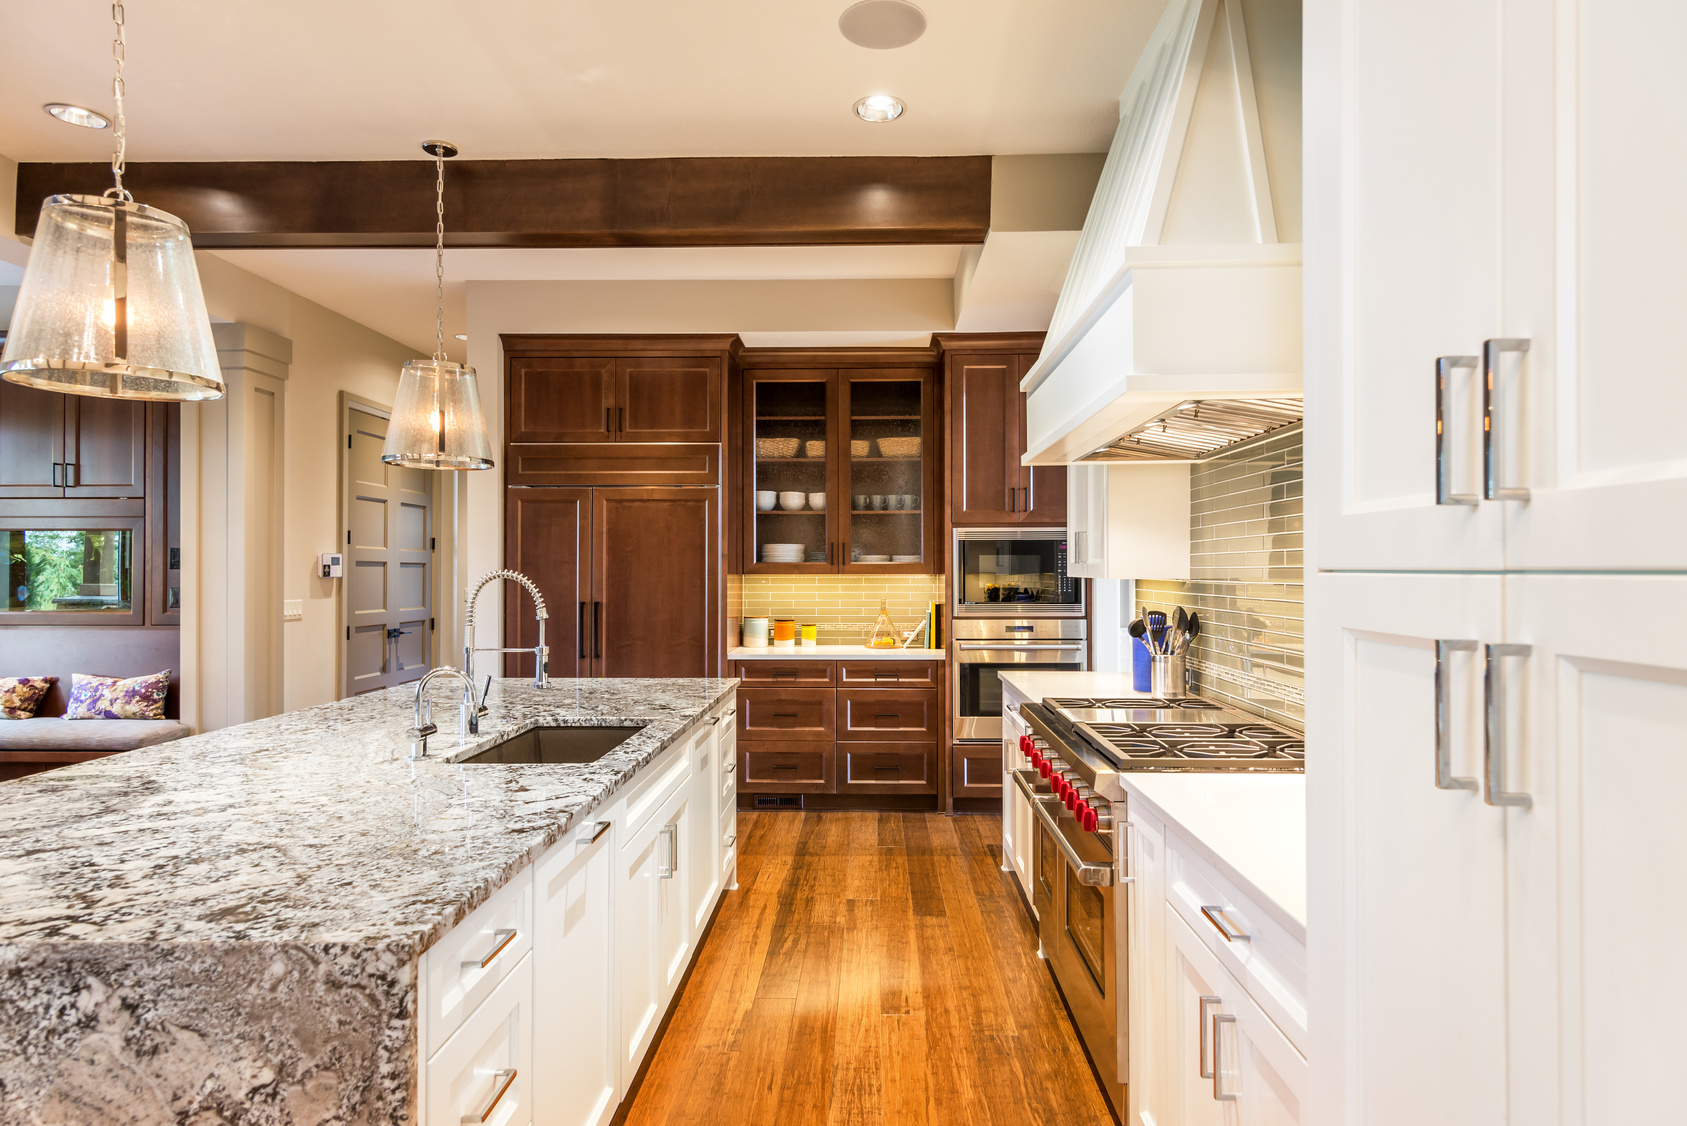 Kitchen design trends in Ozark, AL from Carpetland USA